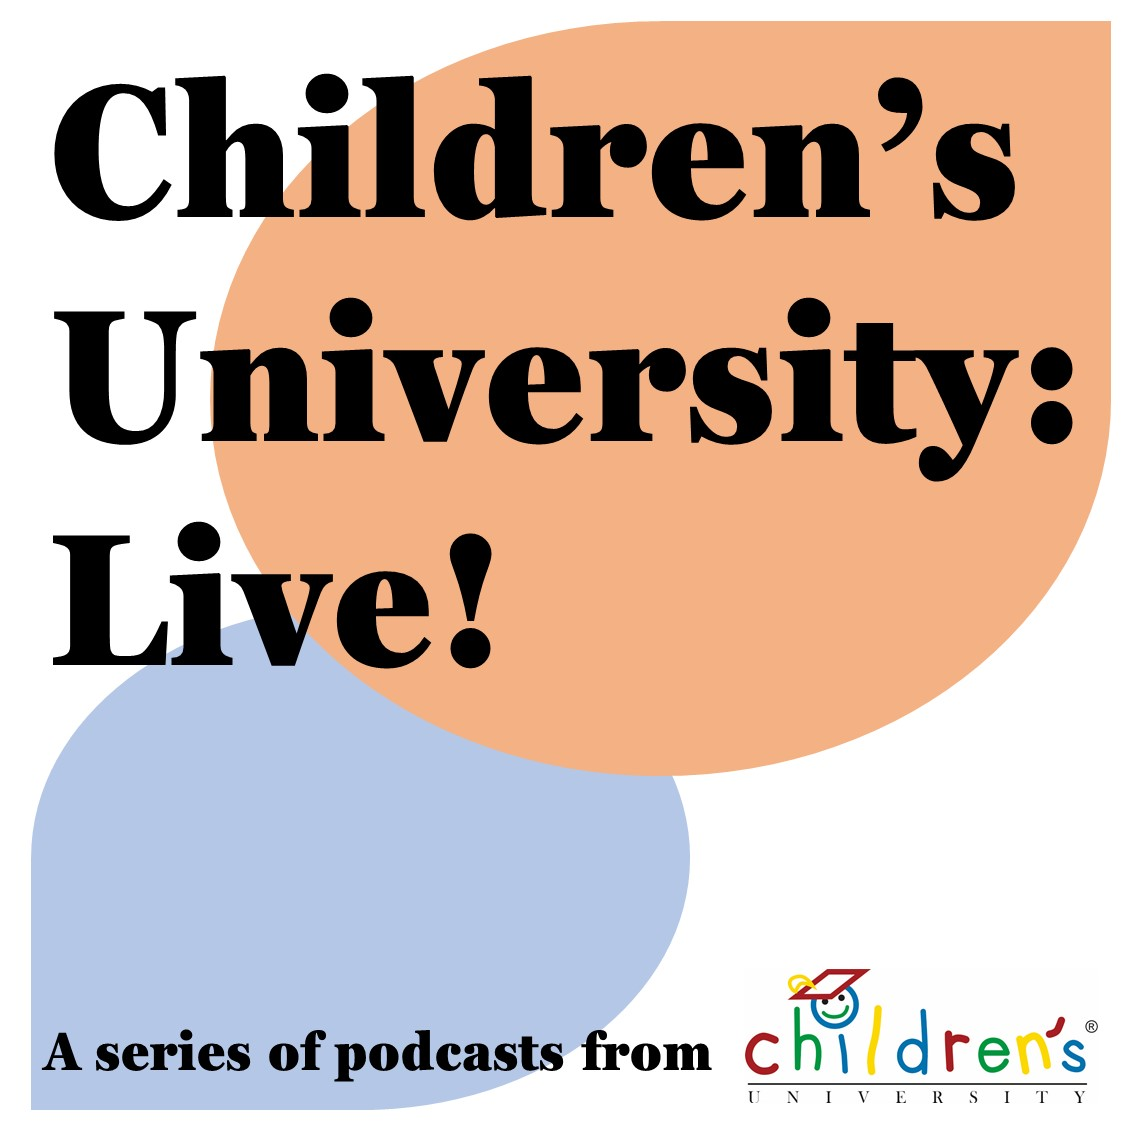 a graphic that says 'Children's University: Live! A series of podcasts from Children's university'